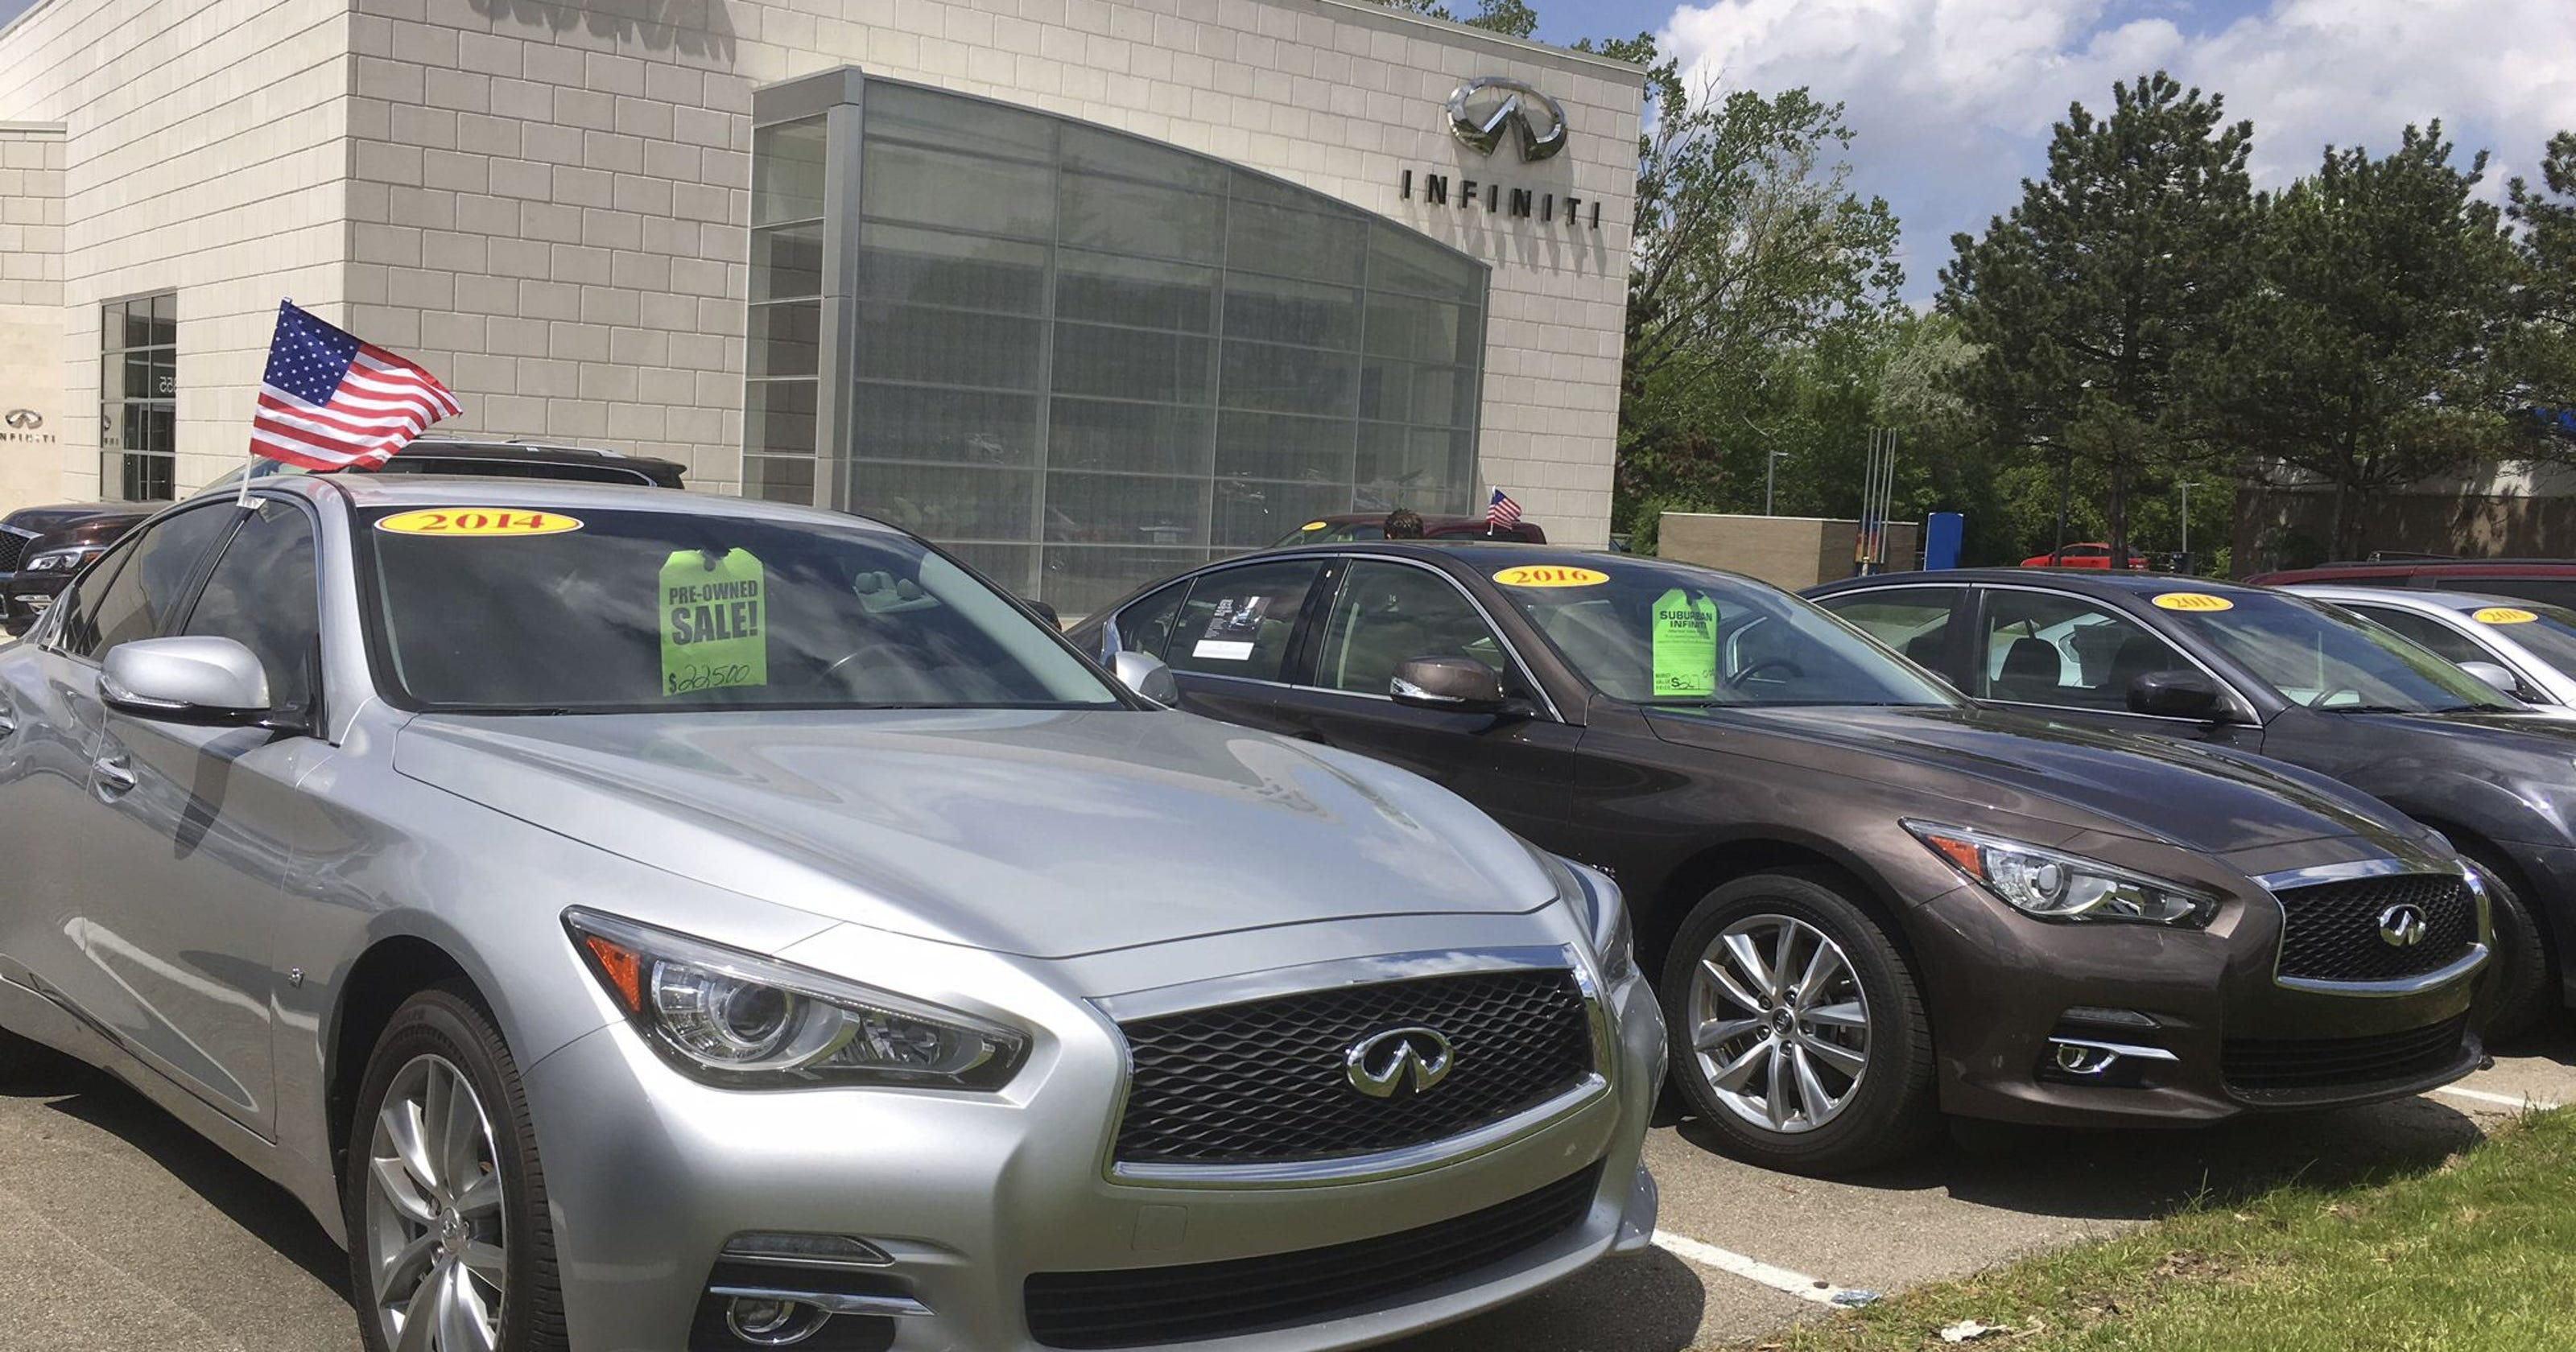 Off Lease Used Cars Are Flooding Market Pushing Prices Down